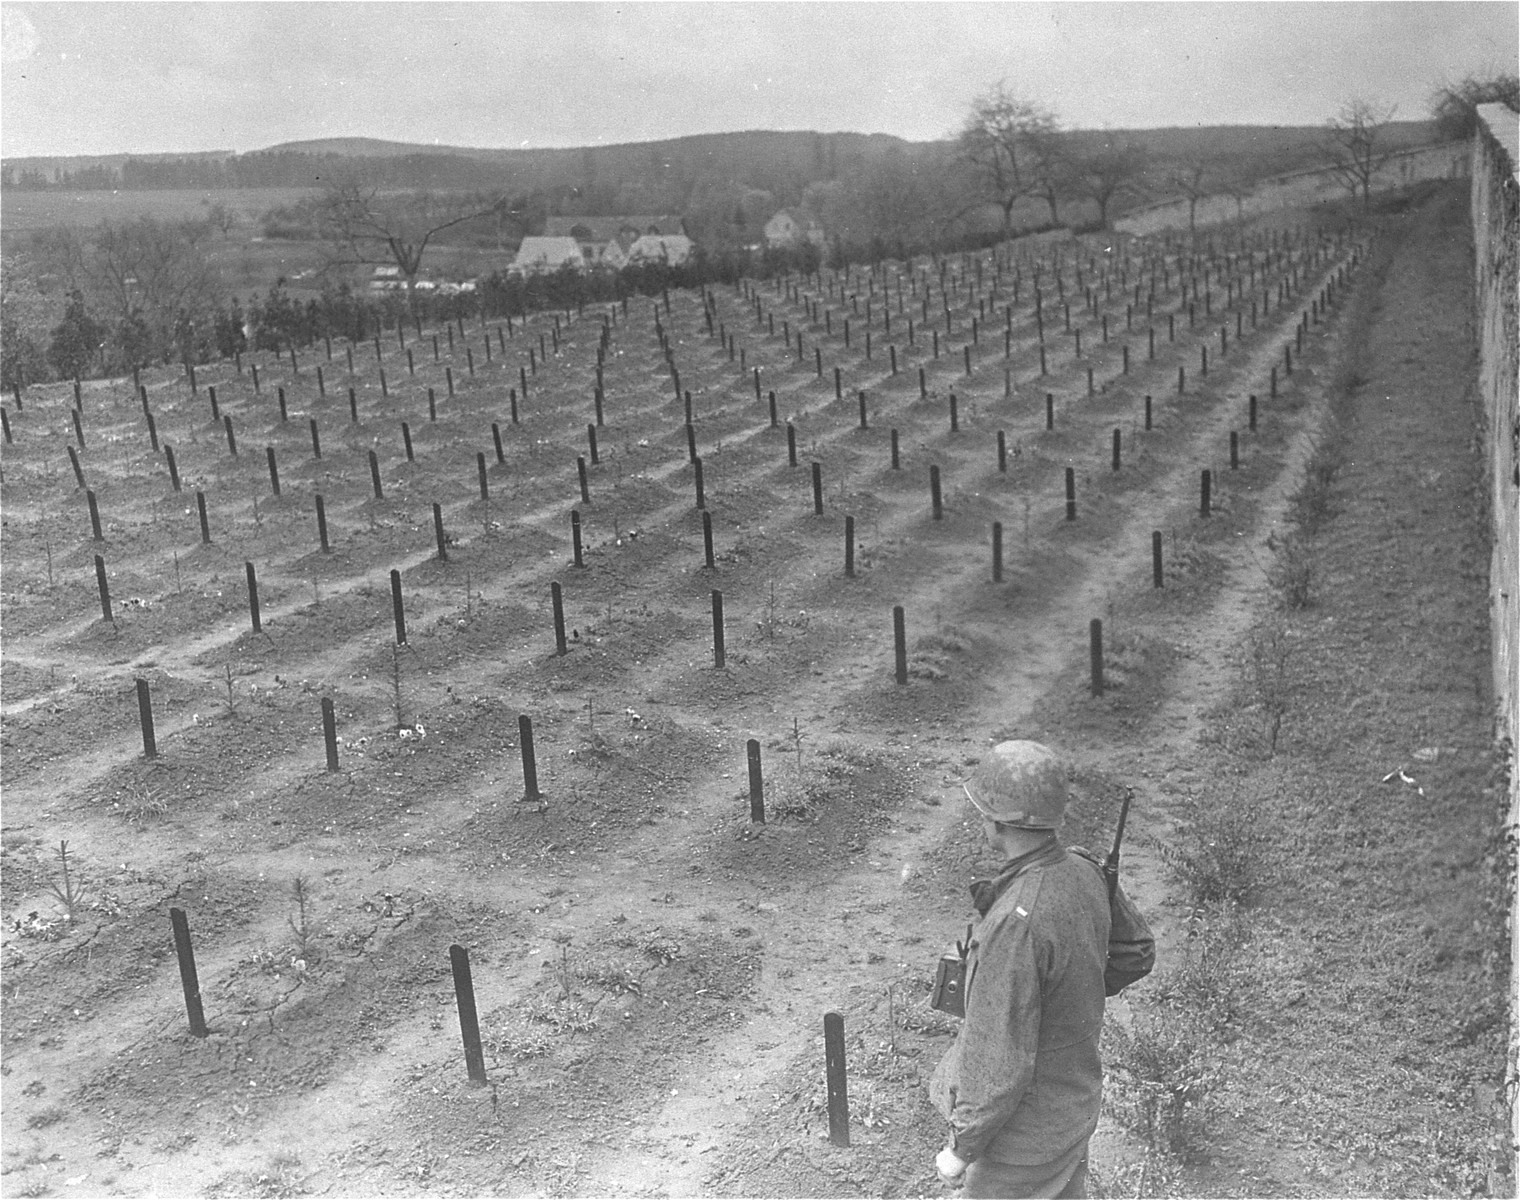 Lt. Alexander J. Wedderburn, photographer with the 28th Infantry Division, First US Army, views the cemetery at the Hadamar Institute, where victims of the Nazi euthanasia program were buried in mass graves.  The photograph was taken by an American military photographer soon after the liberation.